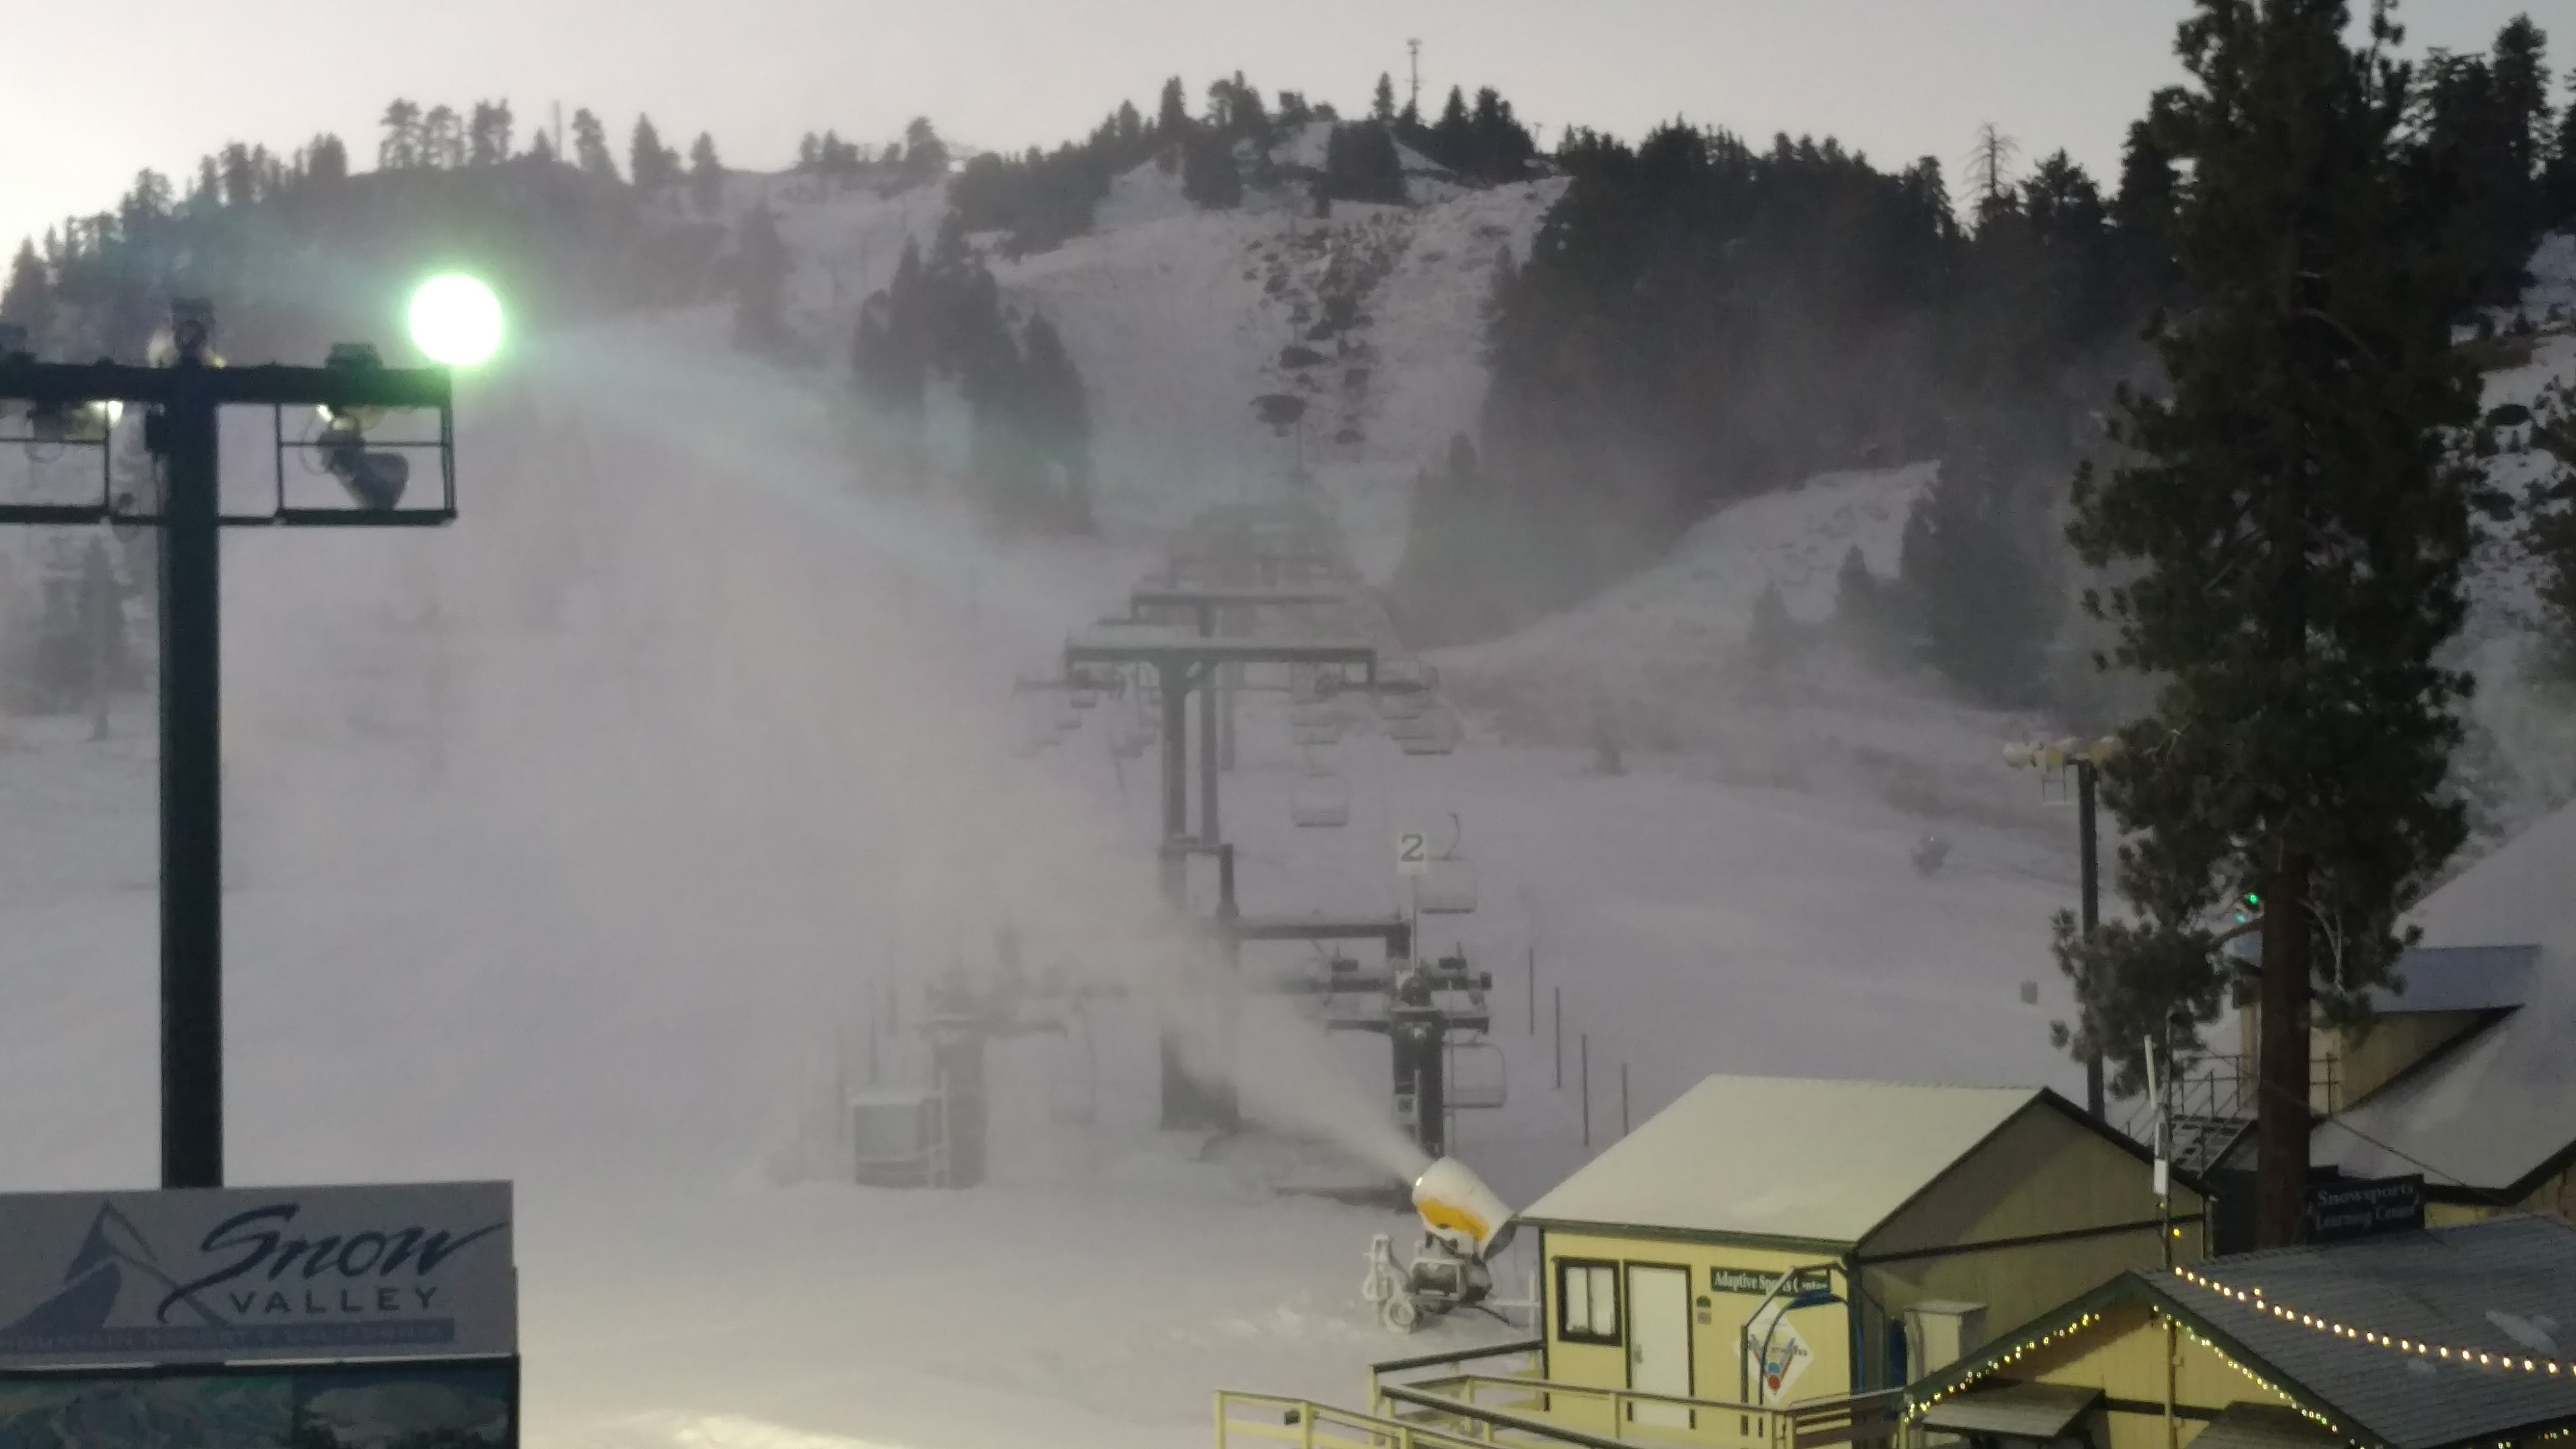 Snow making machines in action during sunset